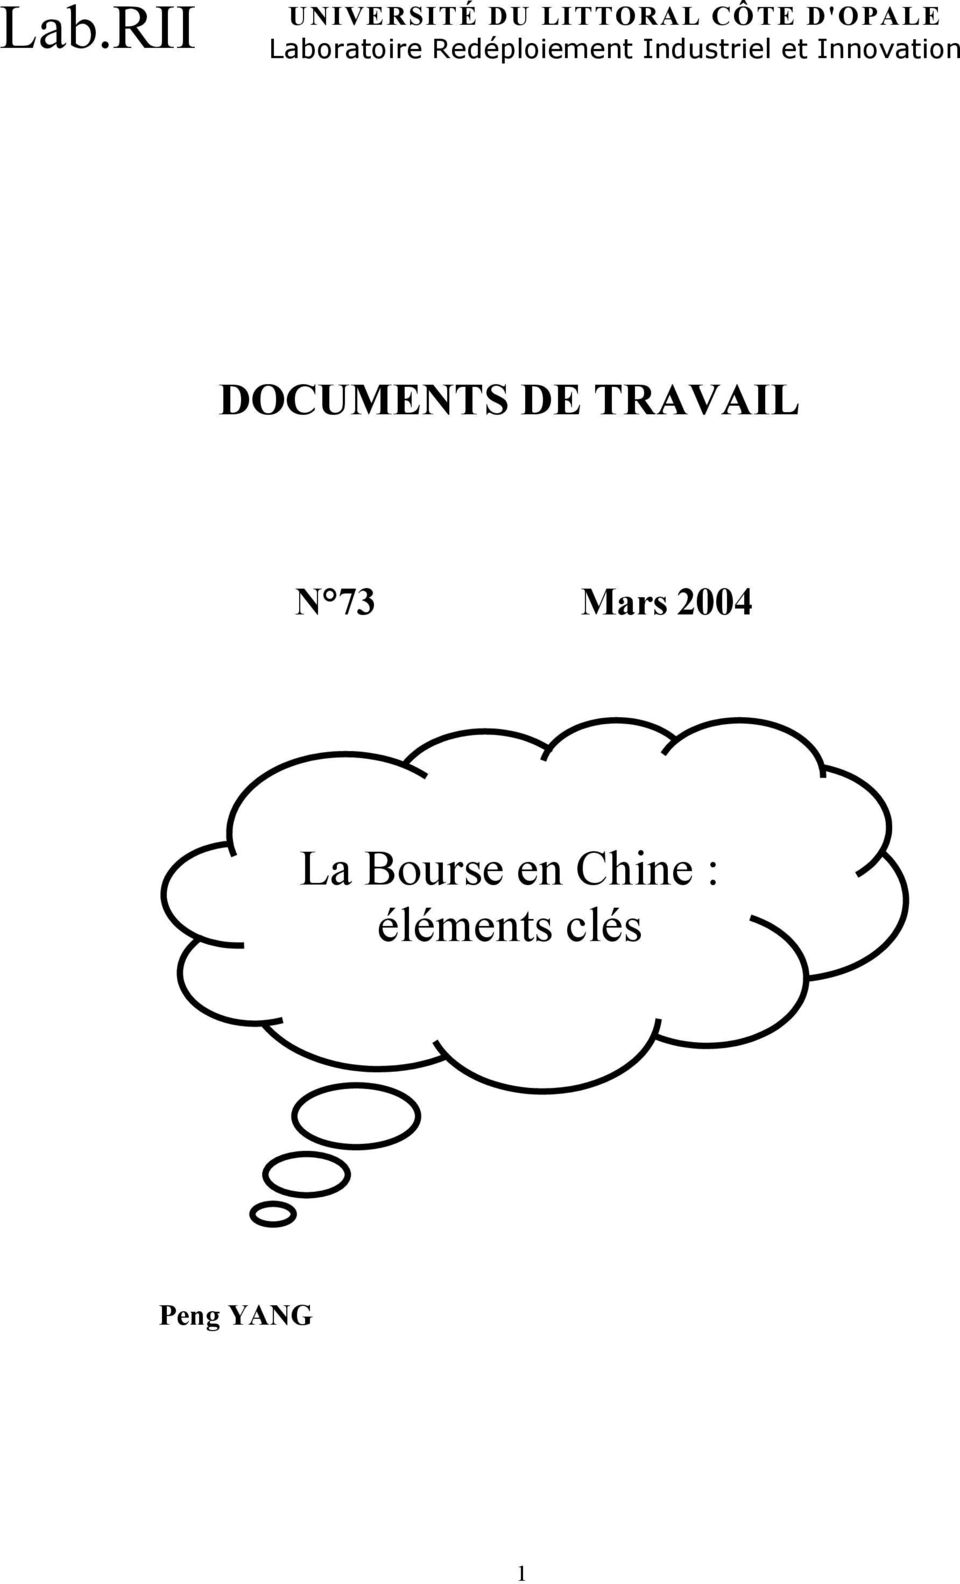 Innovation DOCUMENTS DE TRAVAIL N 73 Mars